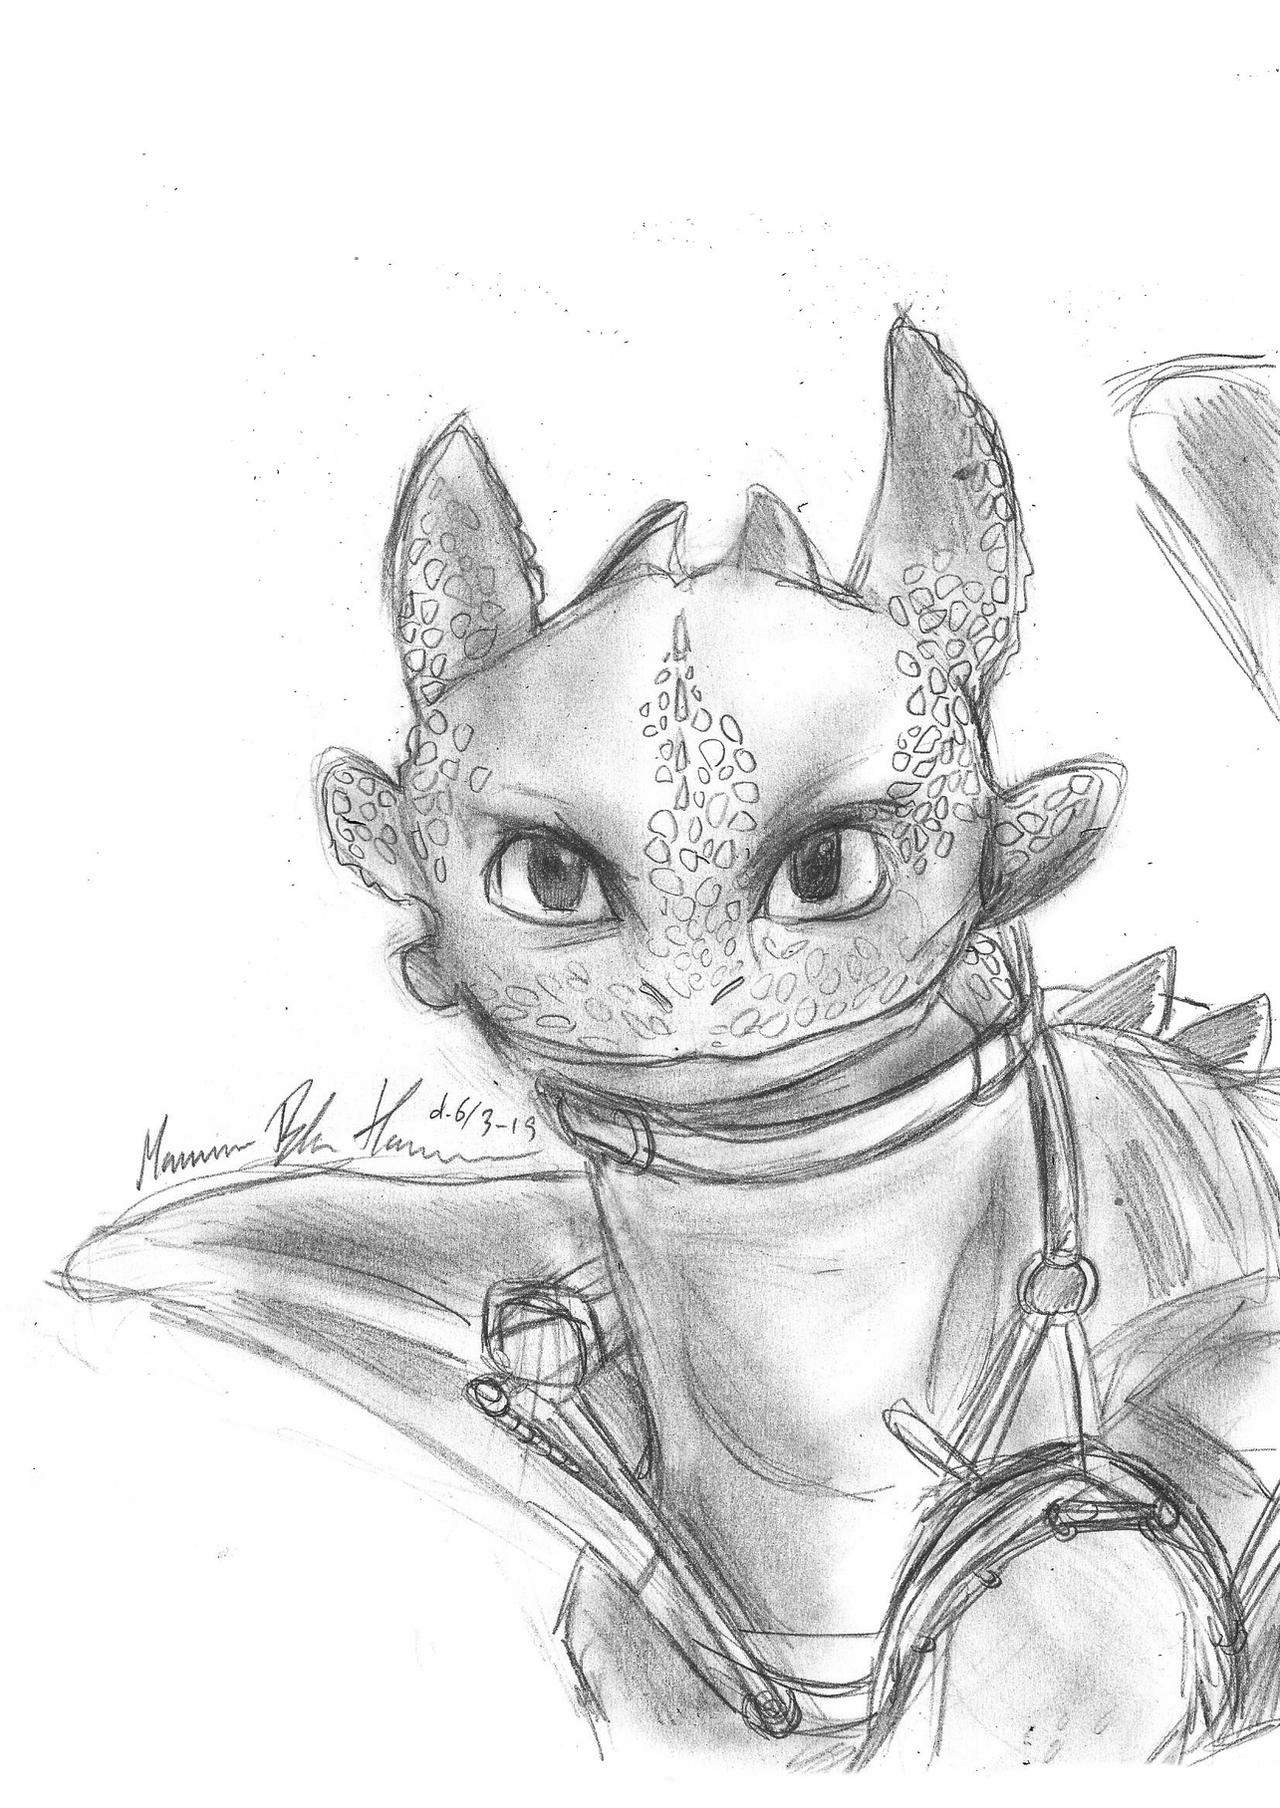 toothless drawing toothless drawing 2 by thewebsurfer97 on deviantart drawing toothless